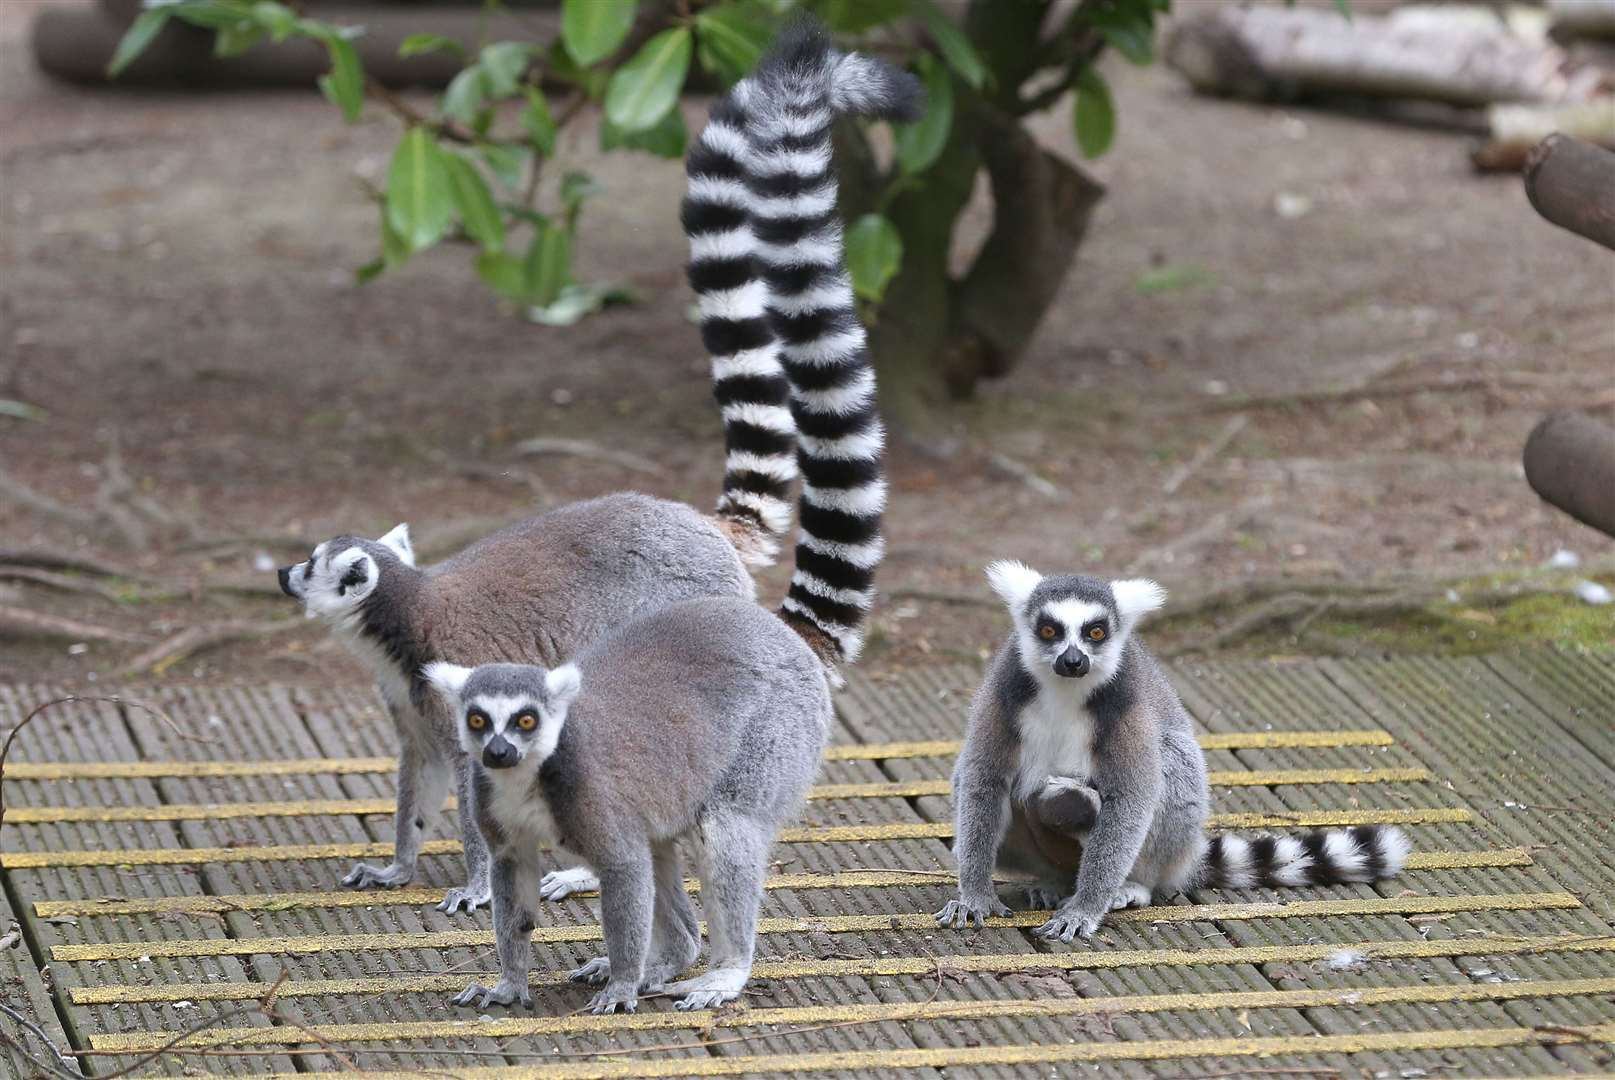 Peachy the Ring Tailed Lemur with her 1 week old baby at Shepreth Wildlife Park..Pic - Richard Marsham. (8402417)